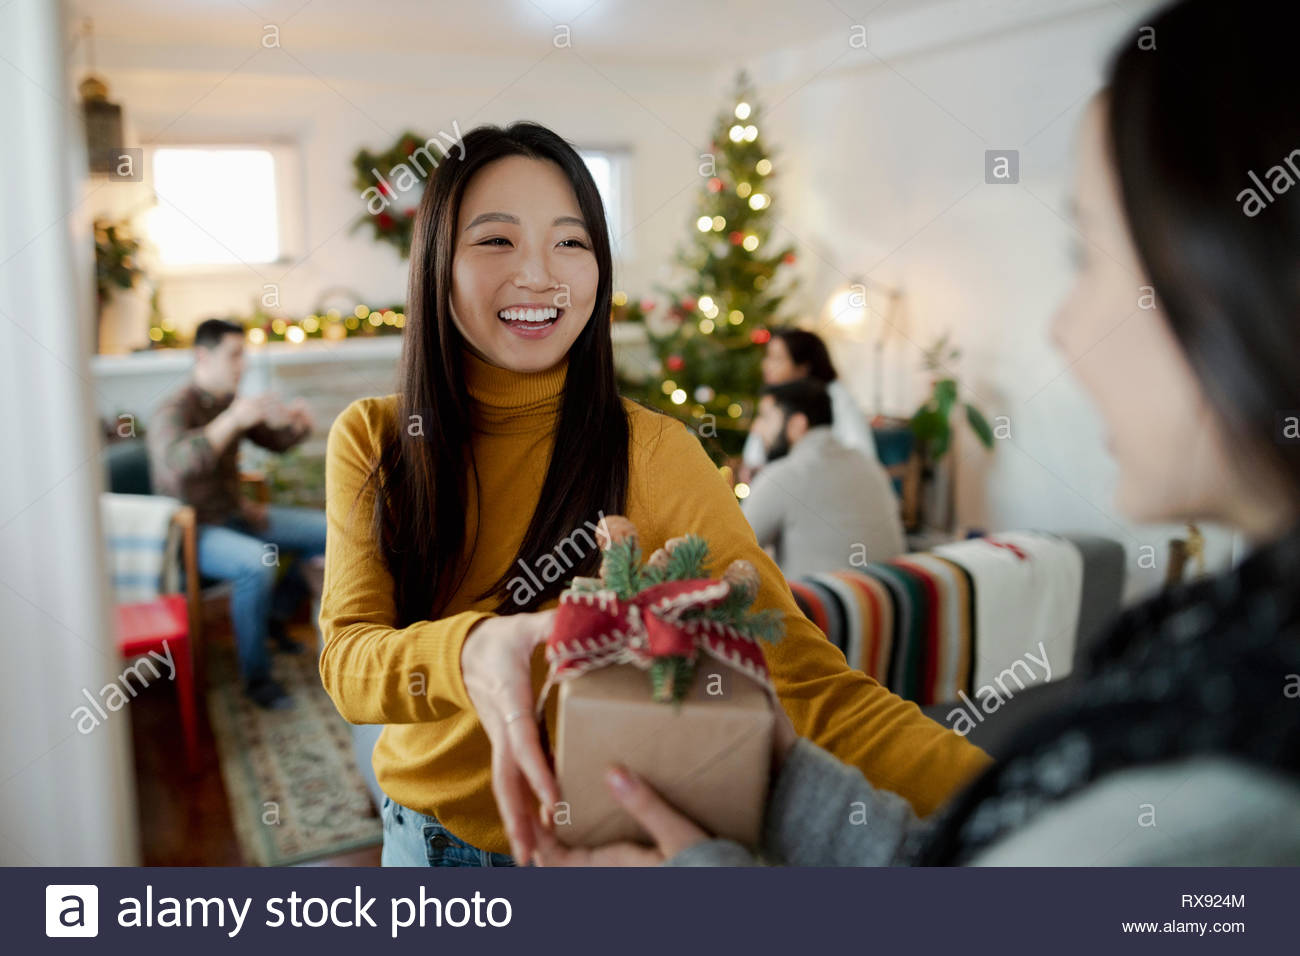 Happy young woman greeting friend with christmas gift in doorway - Stock Image